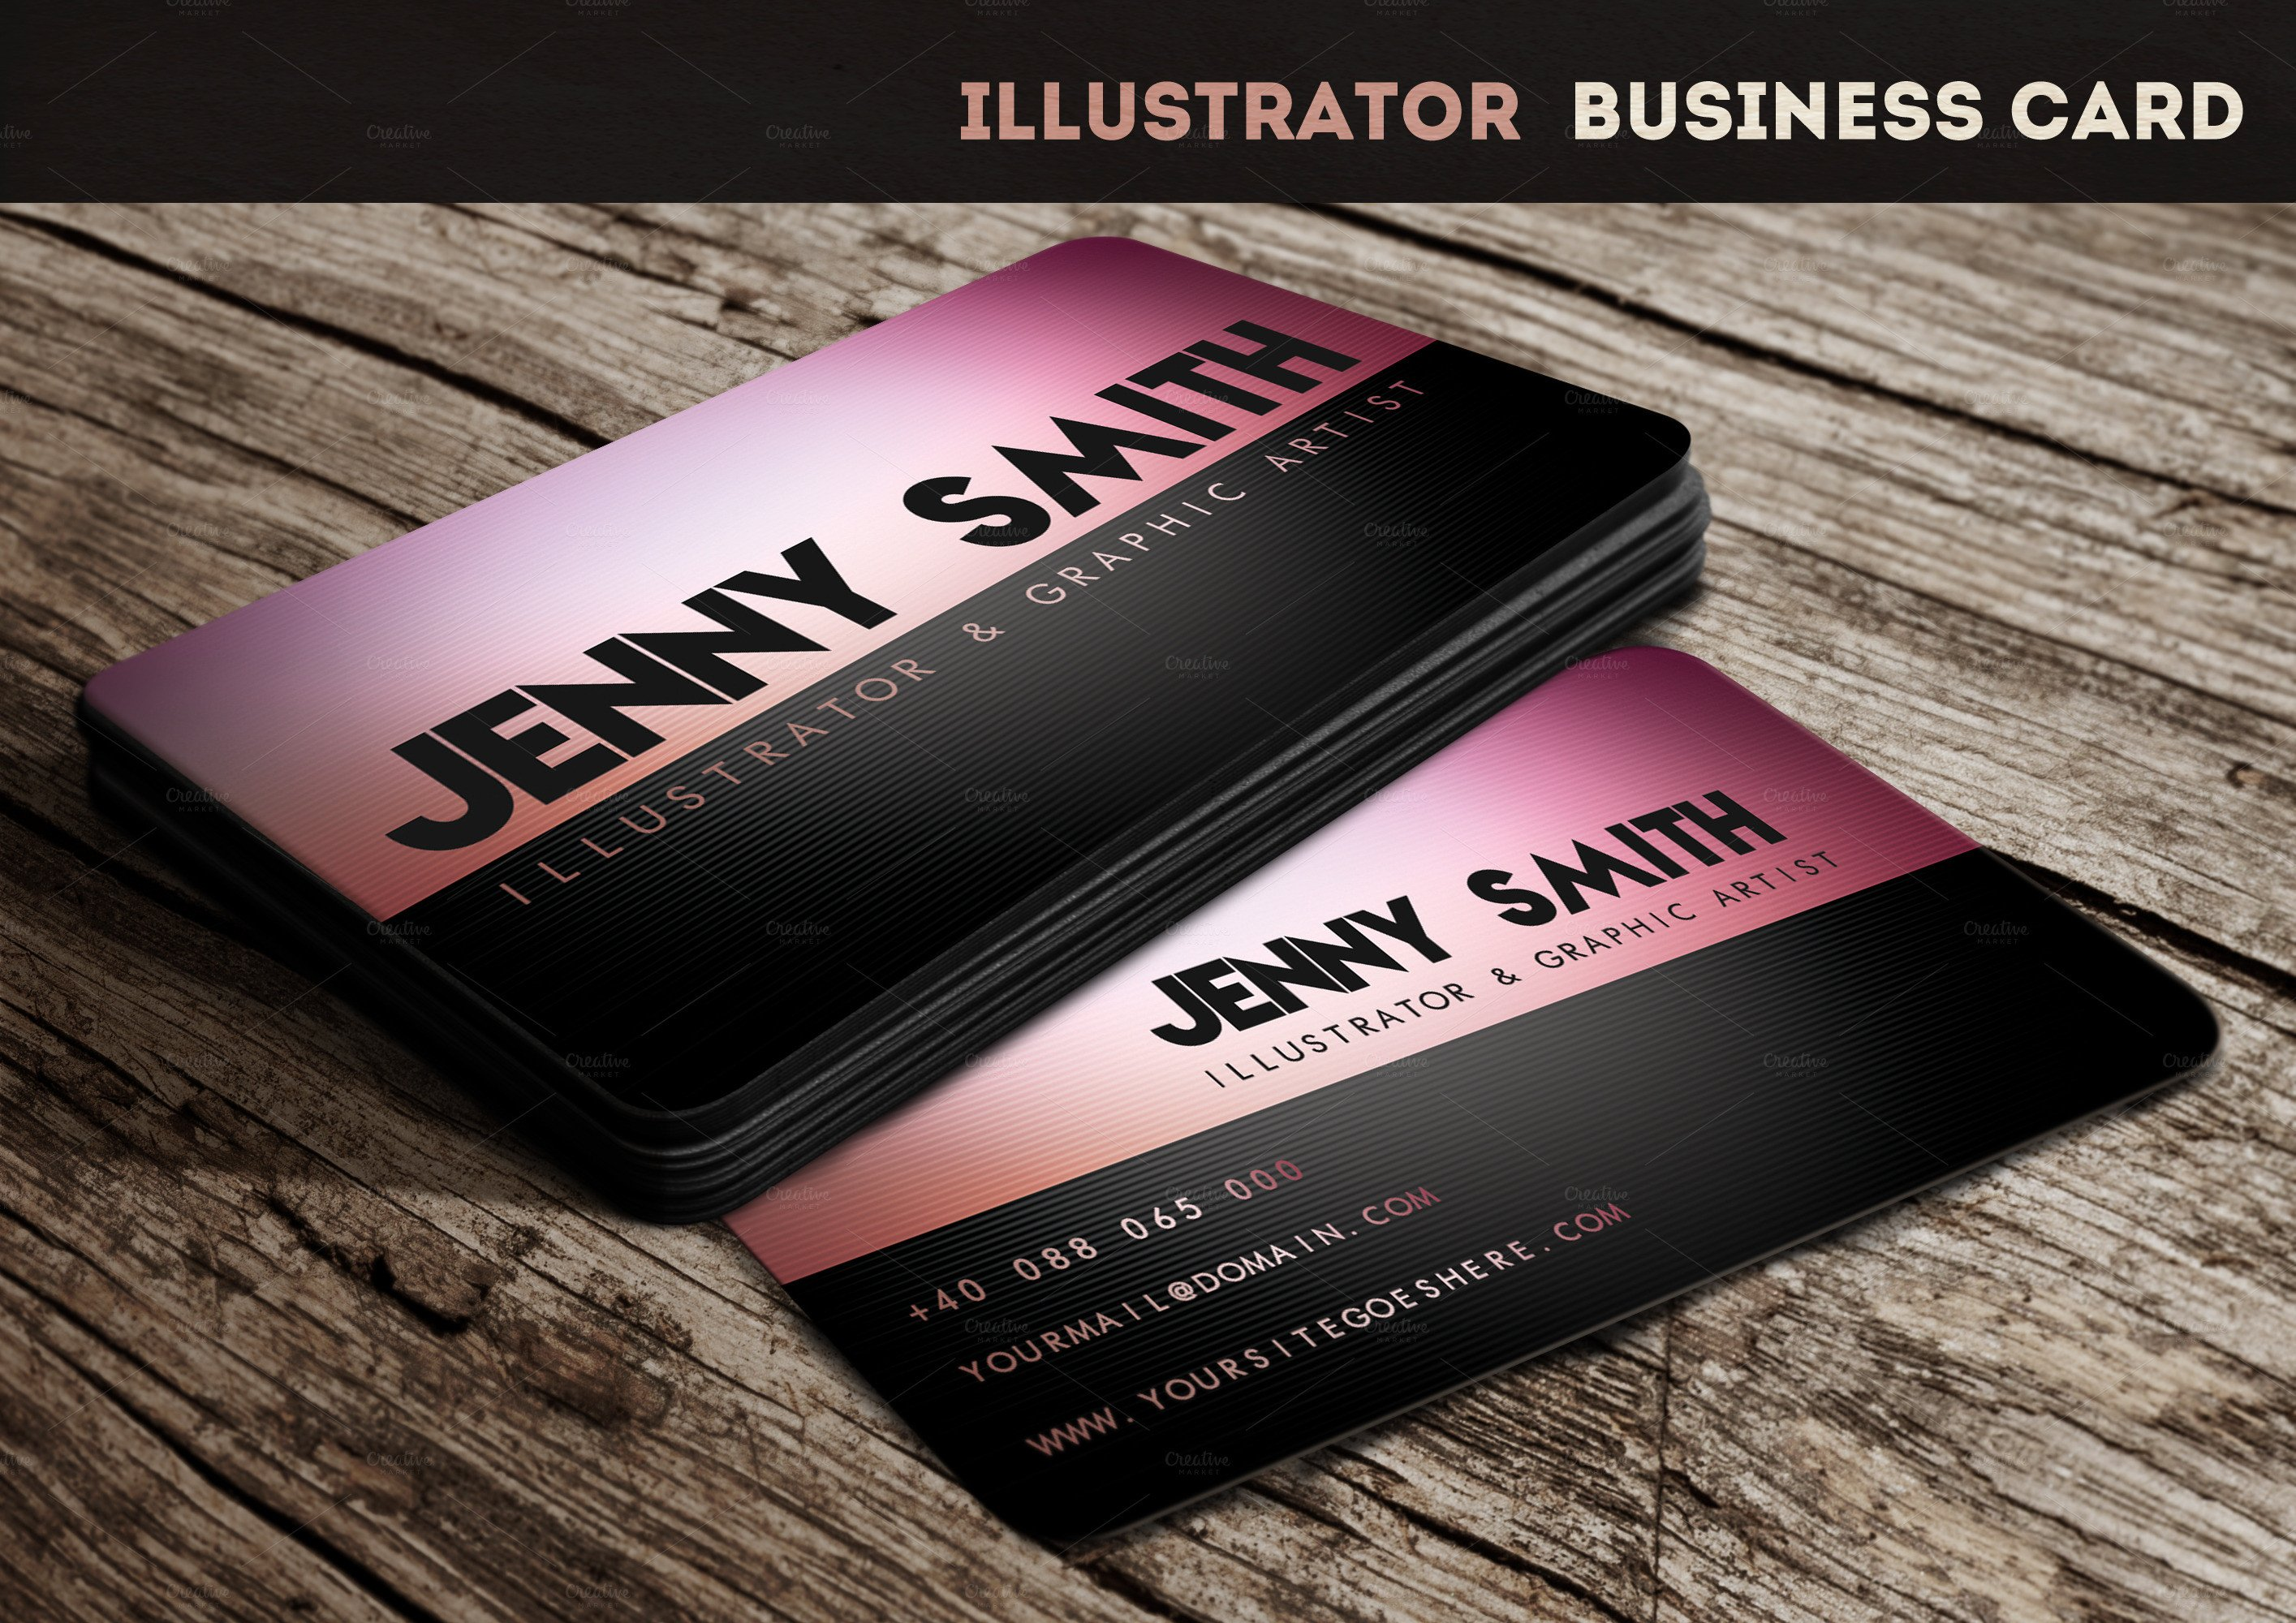 Business Card Template Illustrator Illustrator Business Card Business Card Templates On